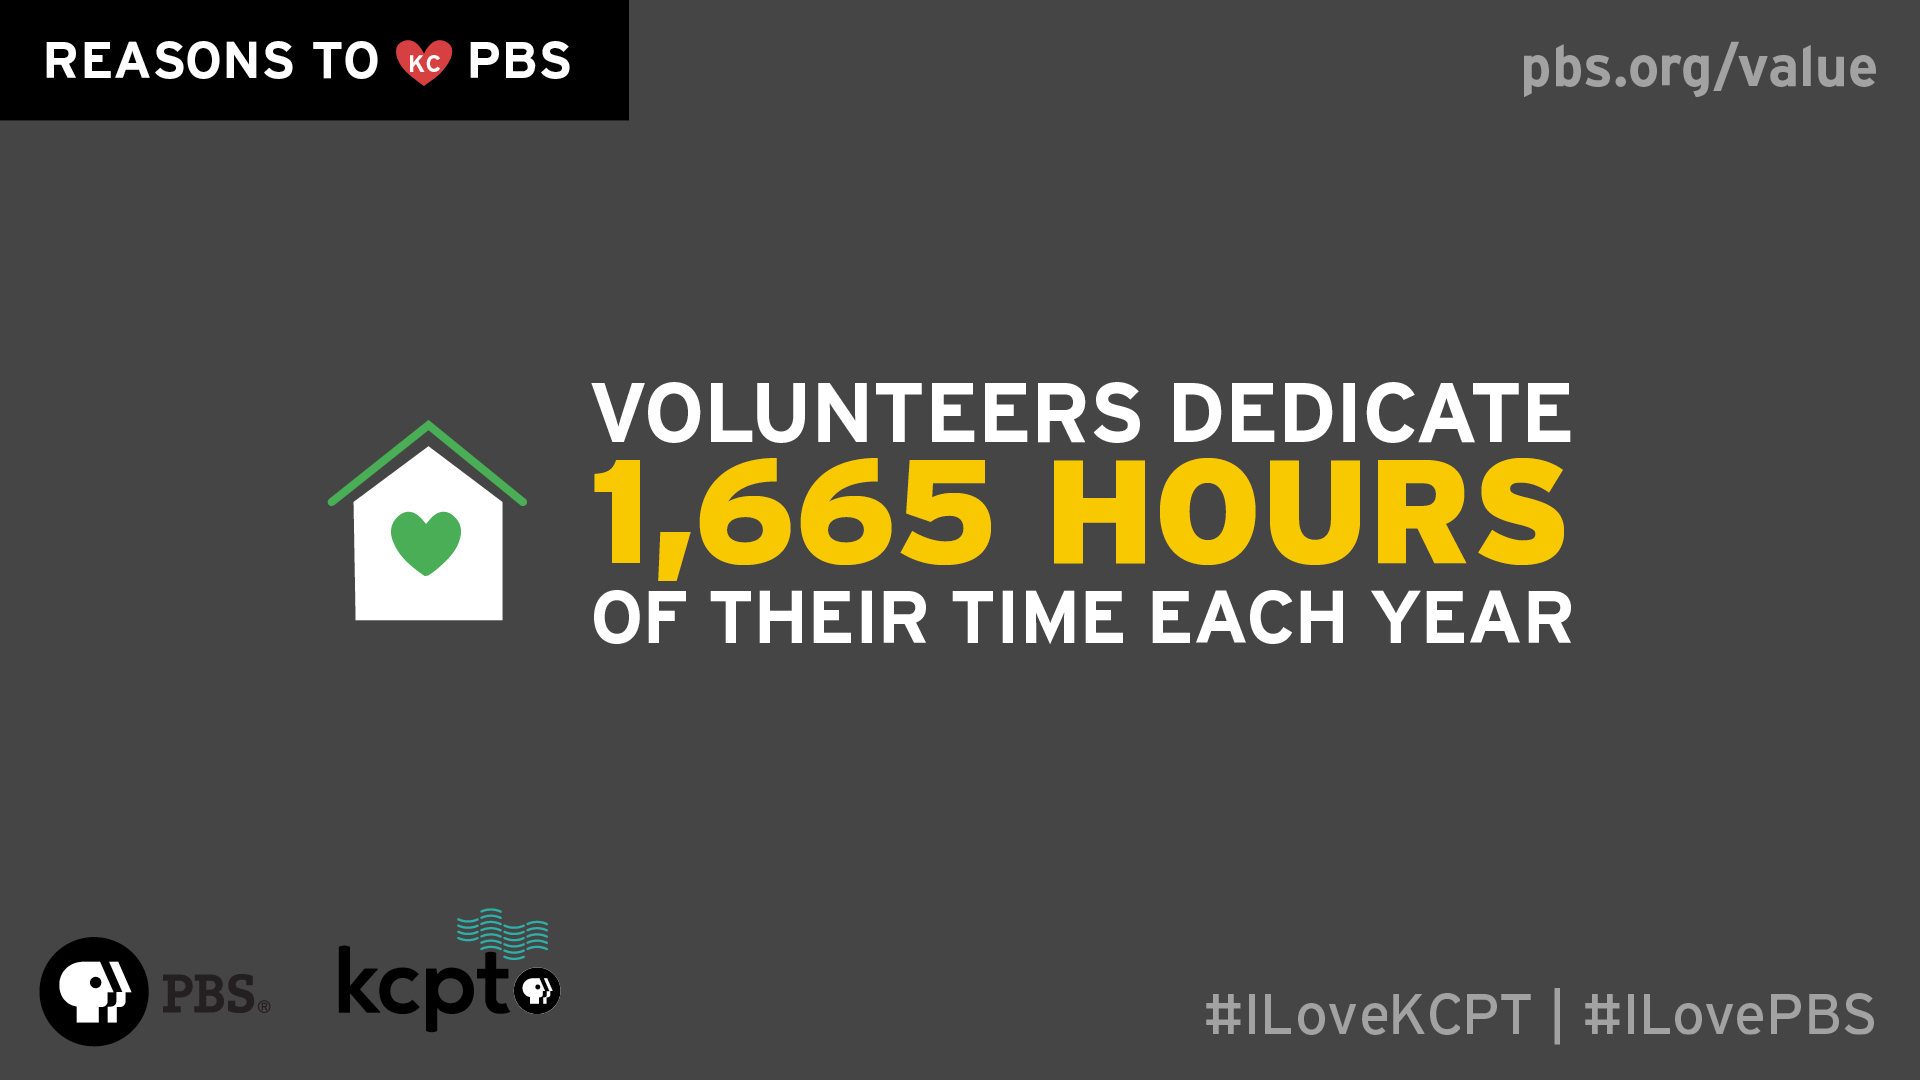 Volunteers dedicate 1,665 hours of their time each year.